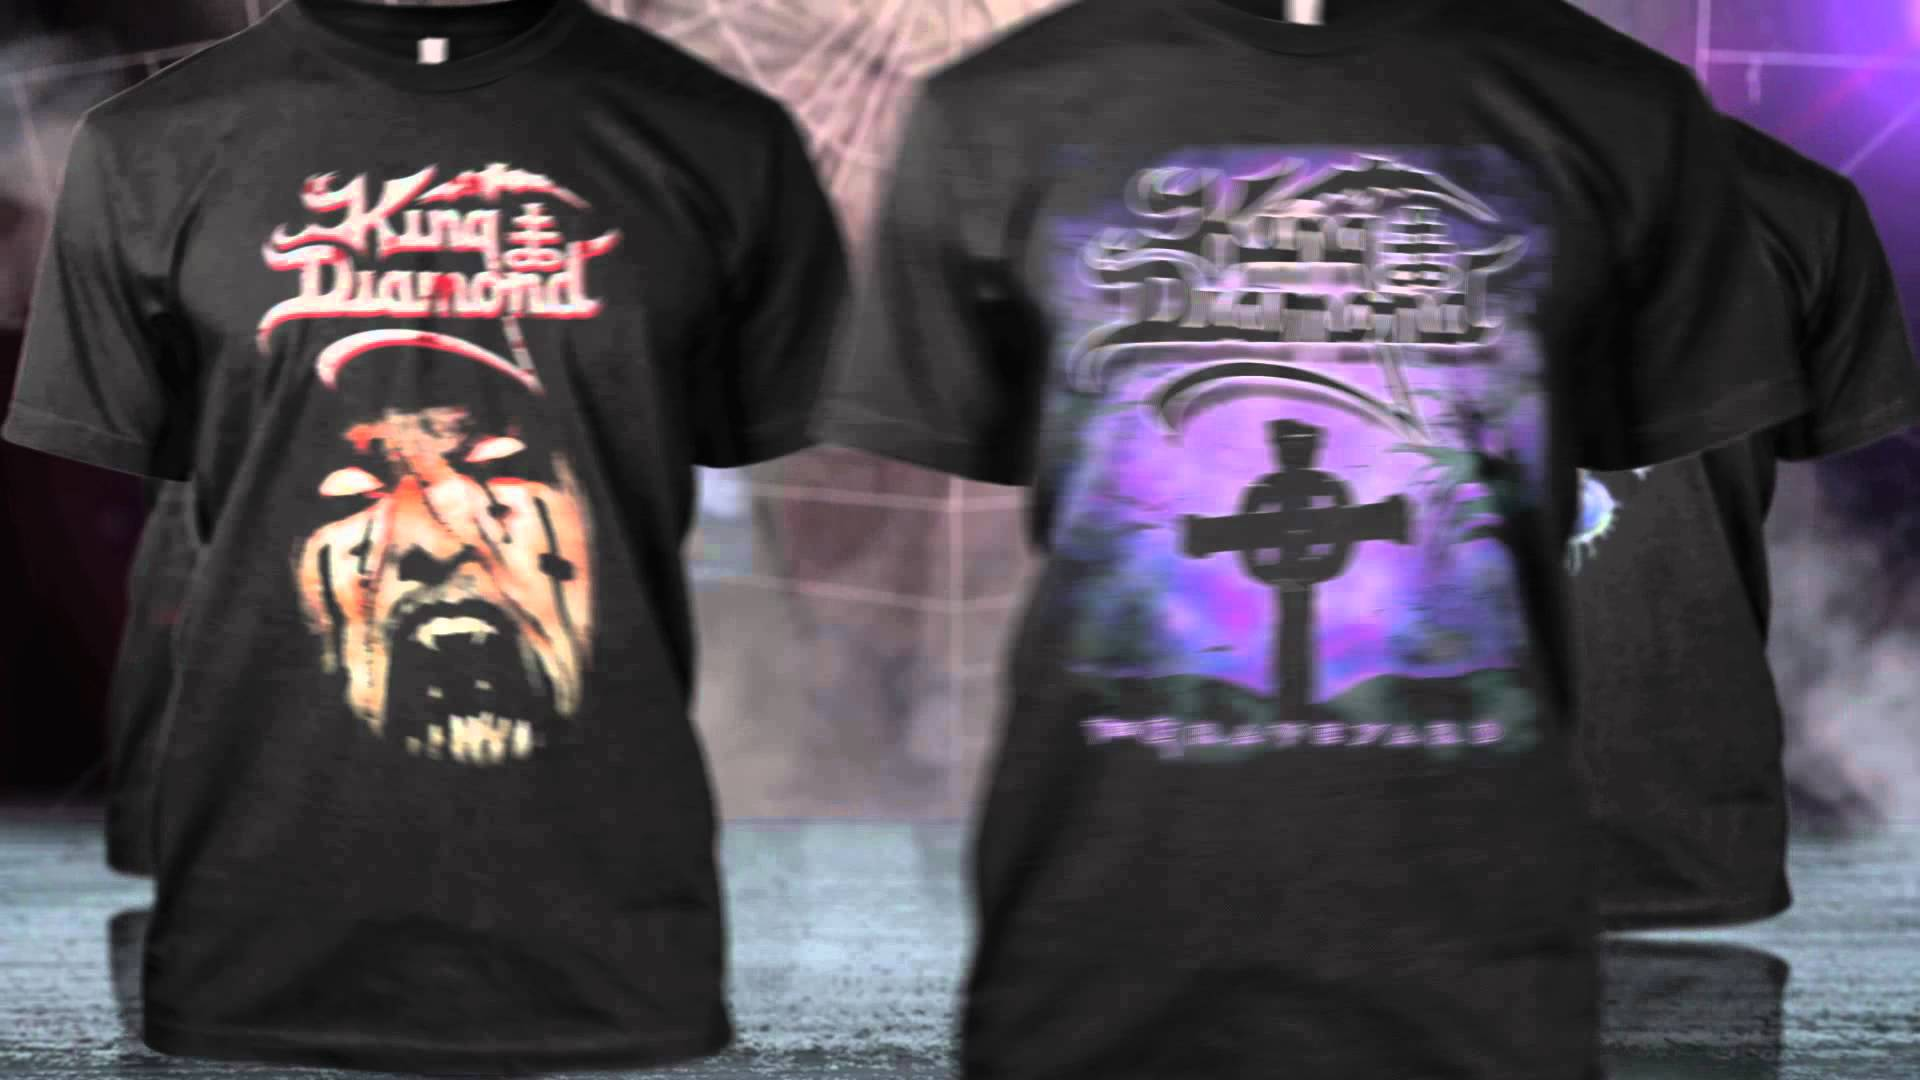 Official King Diamond webstore is now online